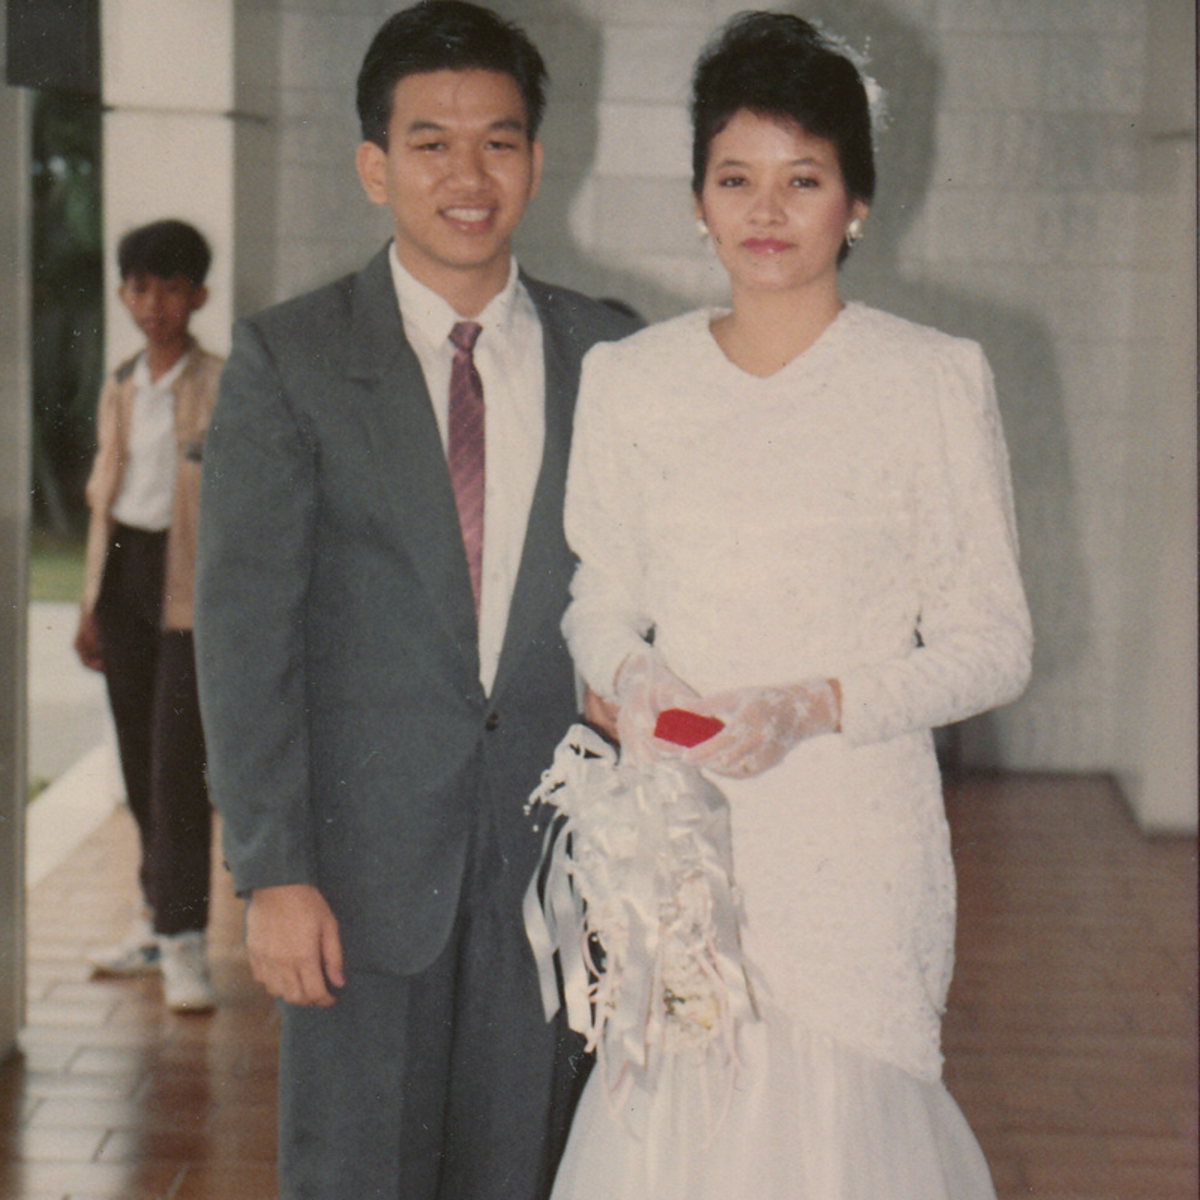 Elder and Sister Teh getting married in the temple